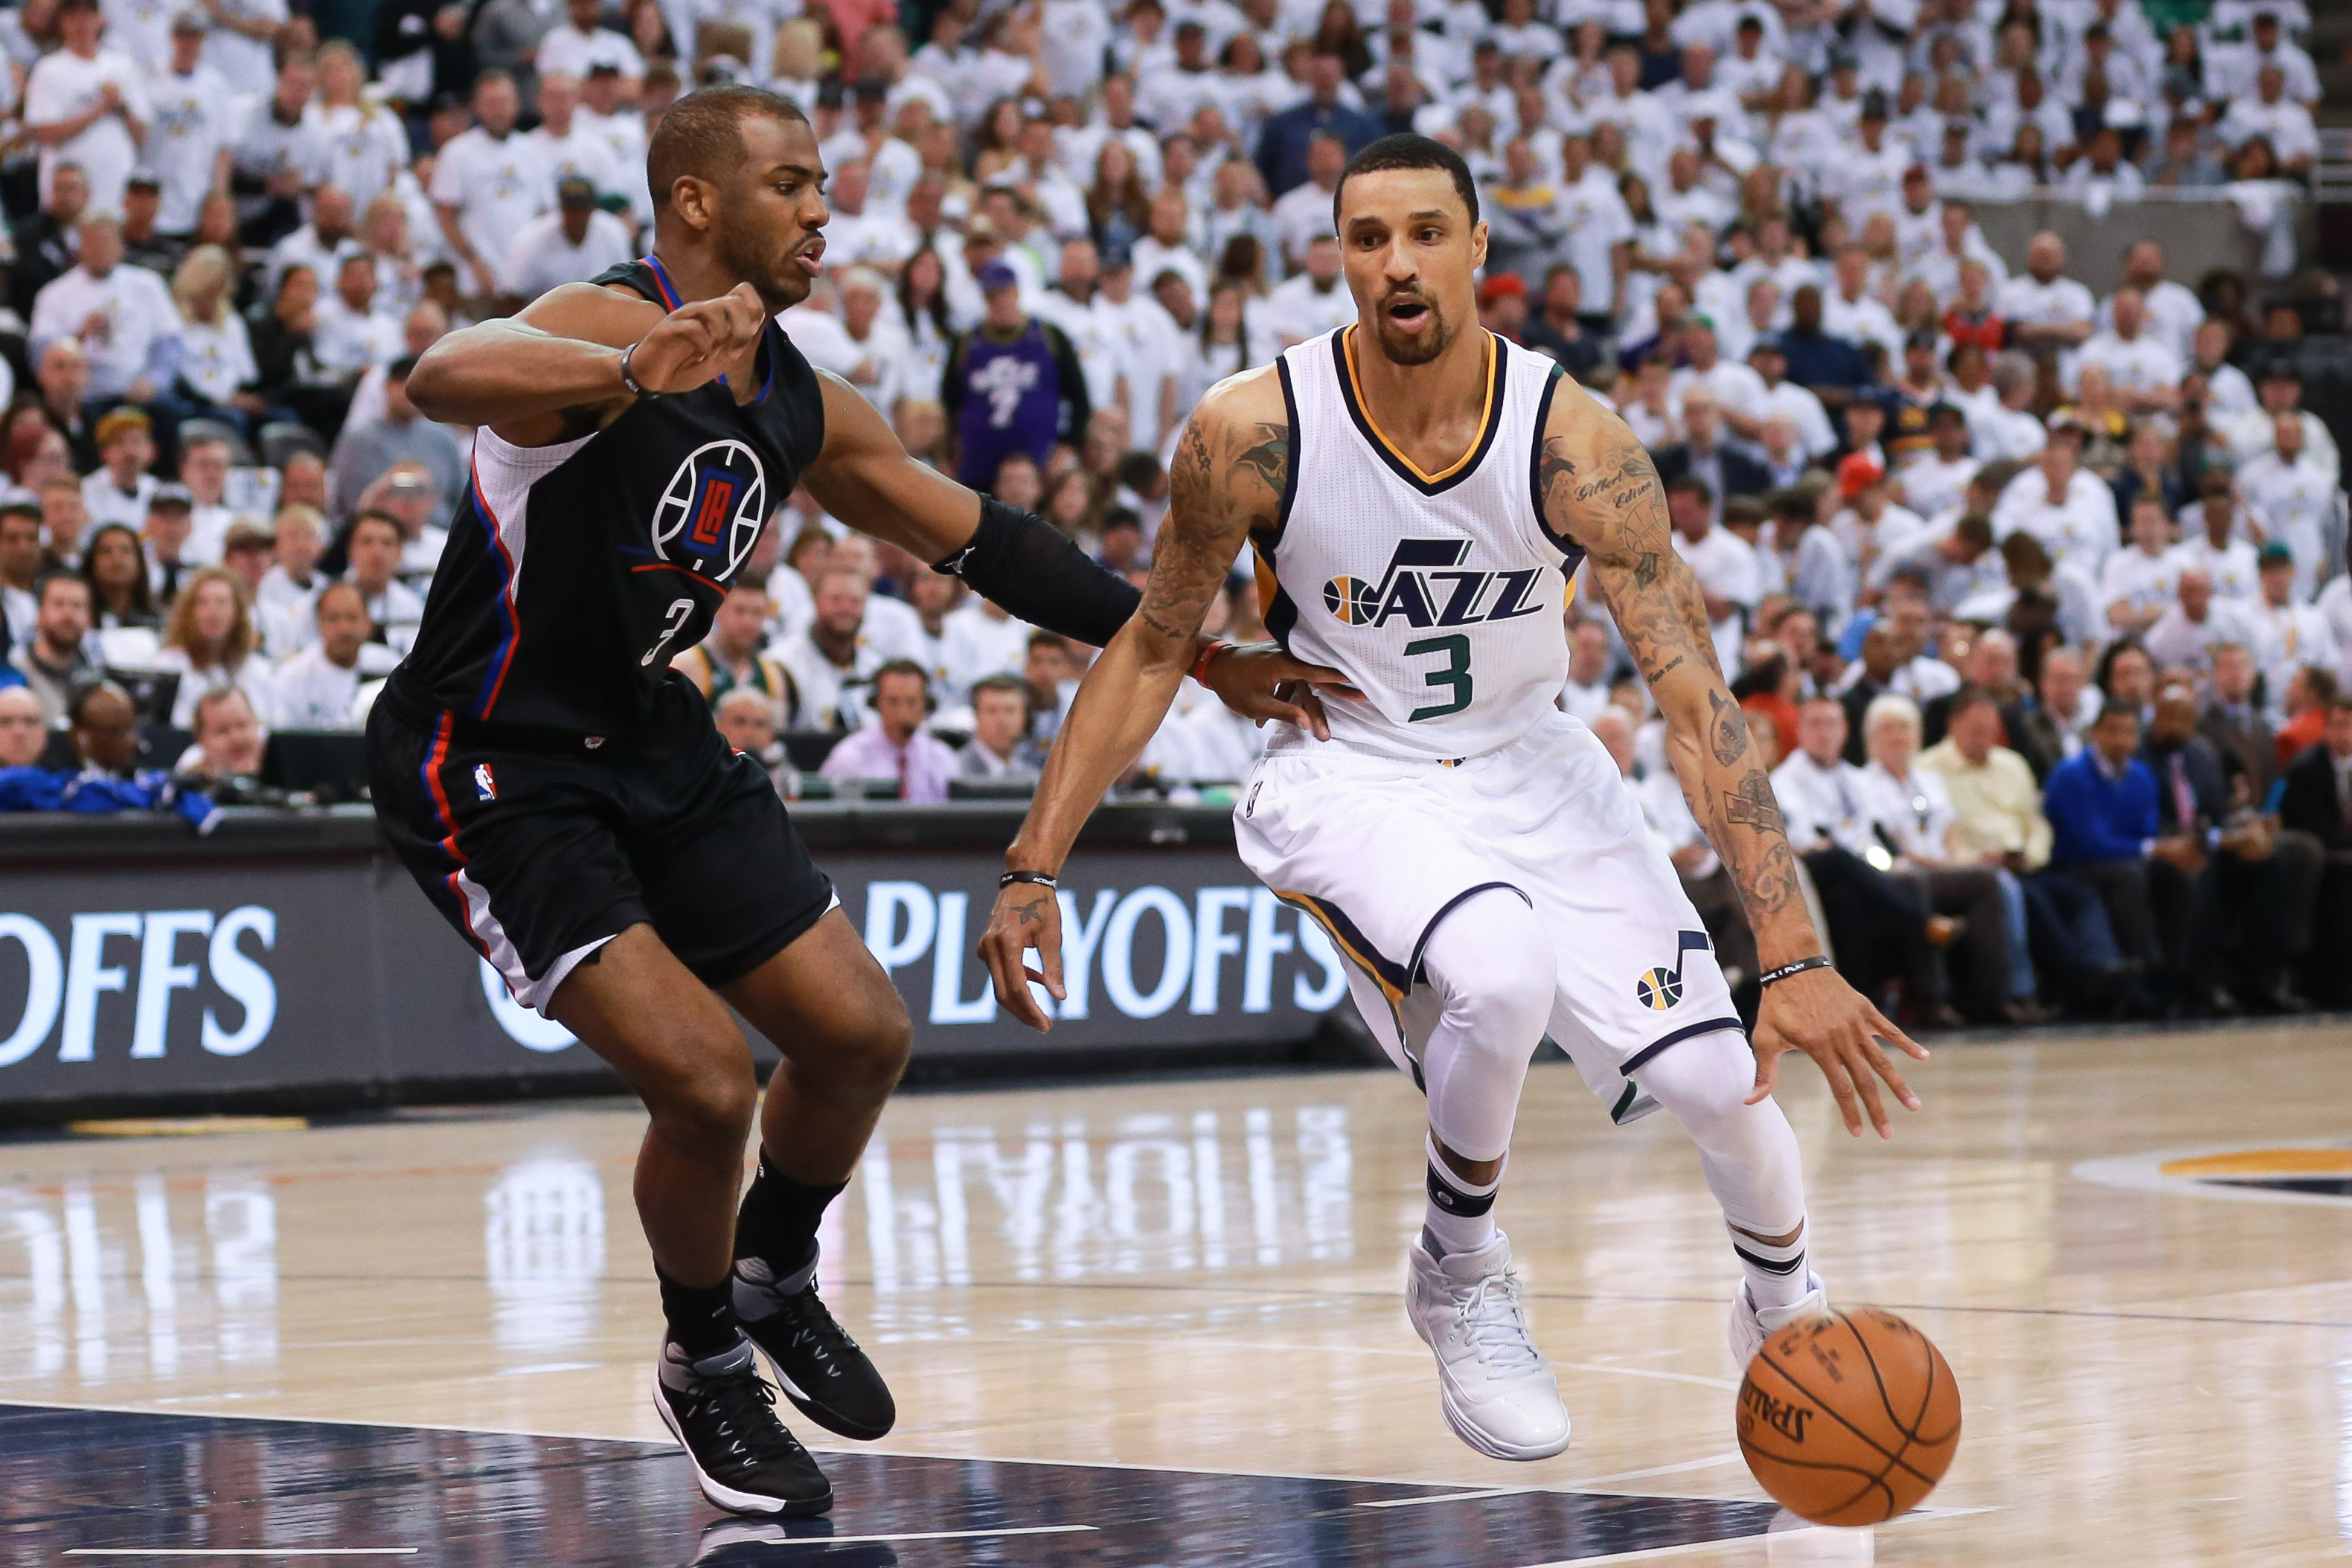 10028418-nba-playoffs-los-angeles-clippers-at-utah-jazz